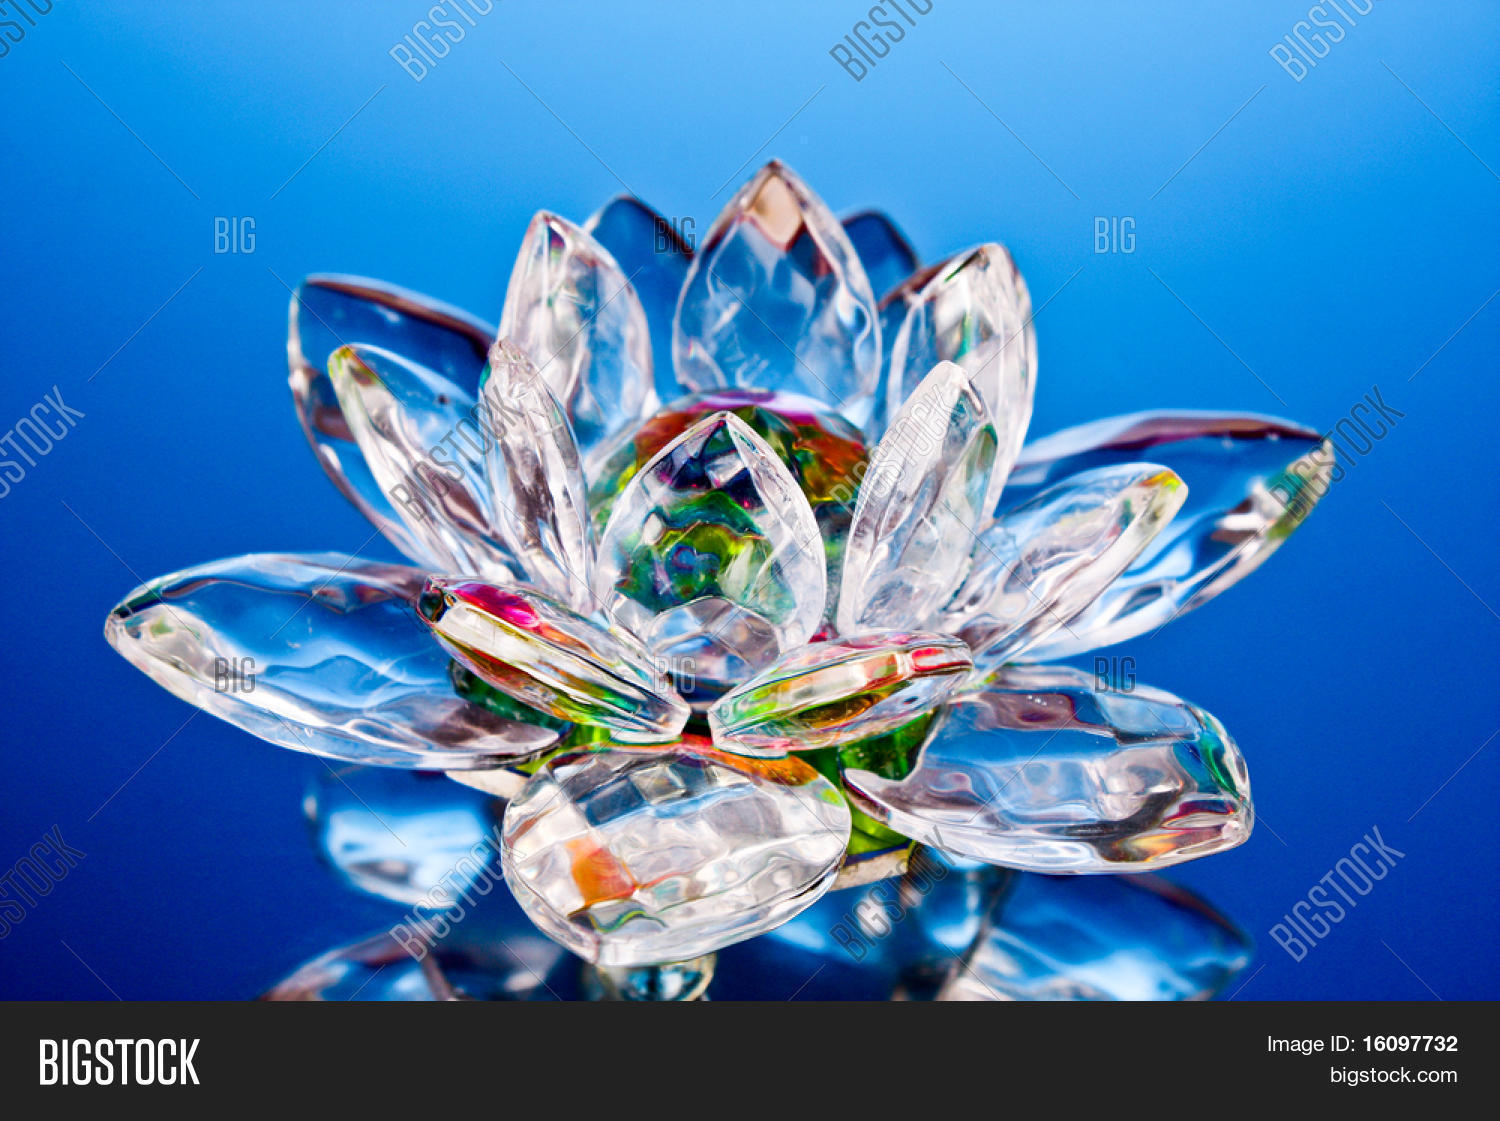 Glass Lotus Flower On Image Photo Free Trial Bigstock